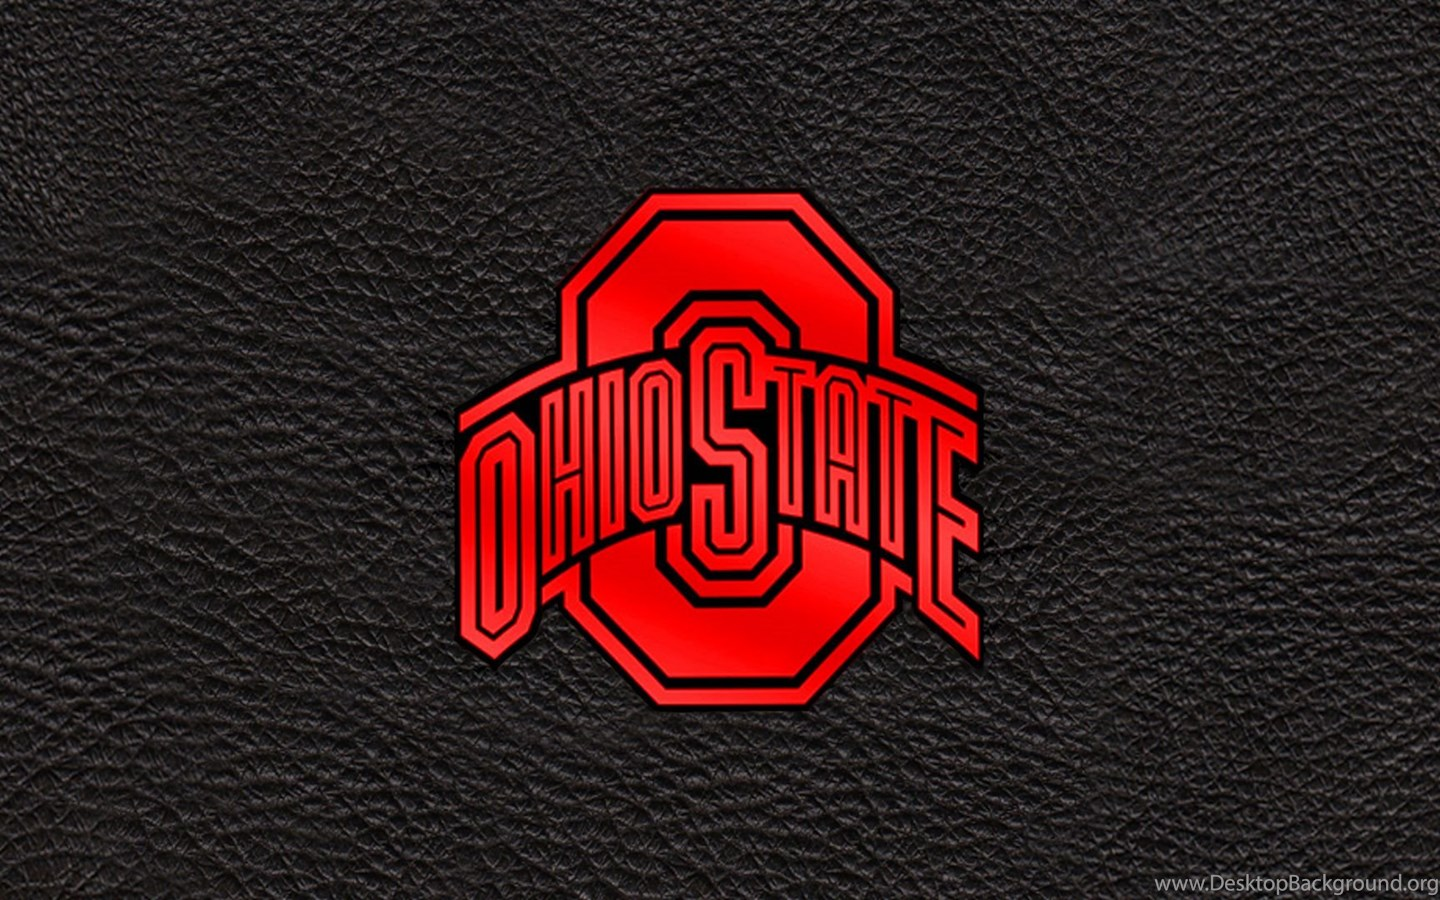 OSU Wallpapers 136 Ohio State Football 29019261 Fanpop